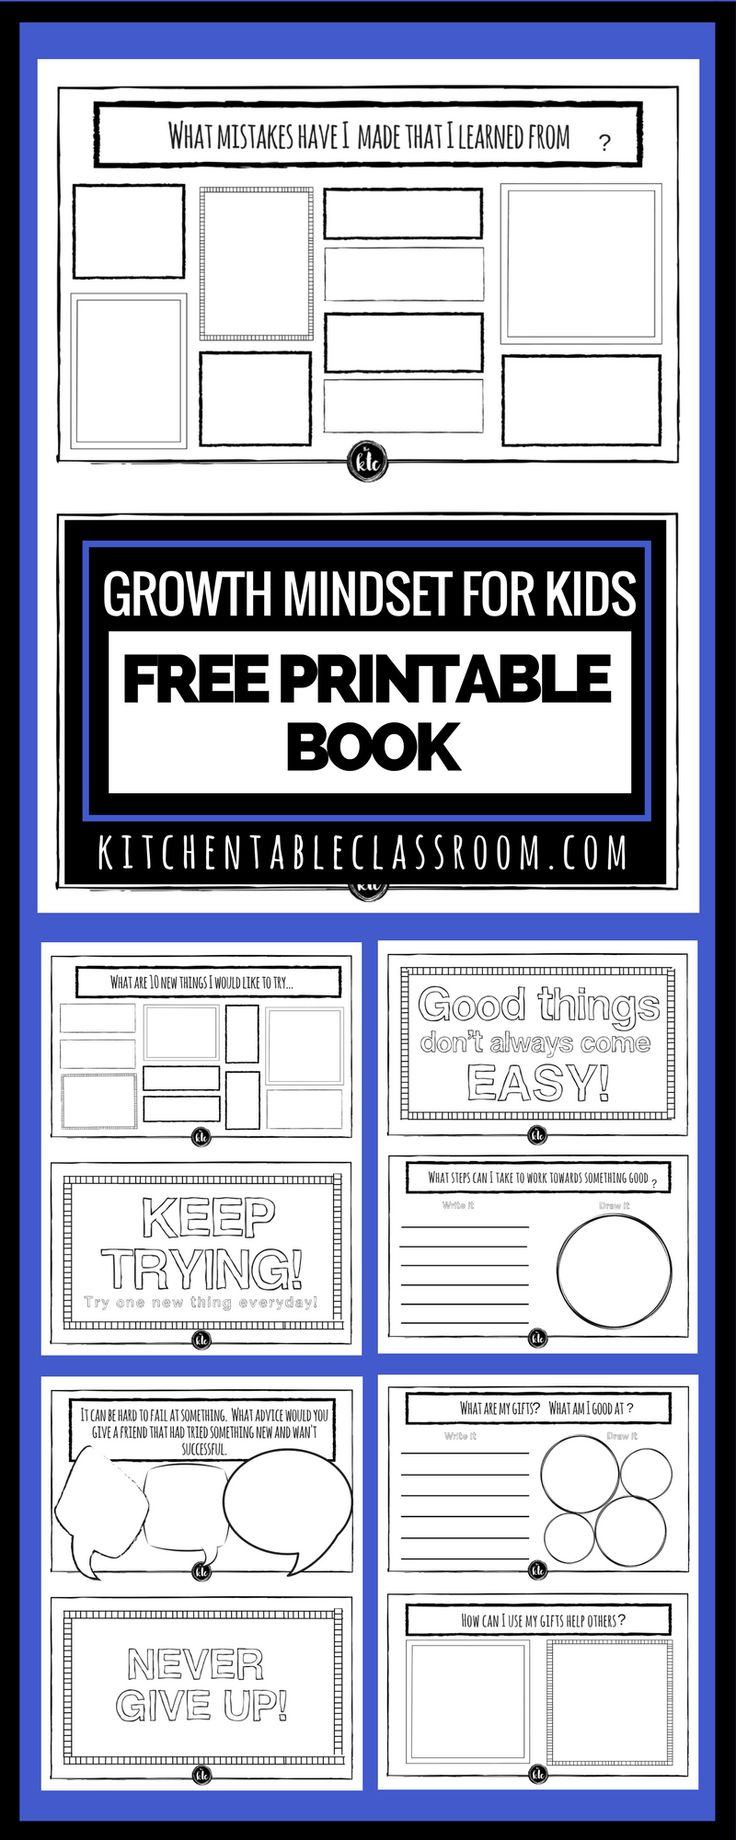 The growth mindset is one of the most encouraging perspective changes out there! Check out this free printable book about growth mindset for kids!